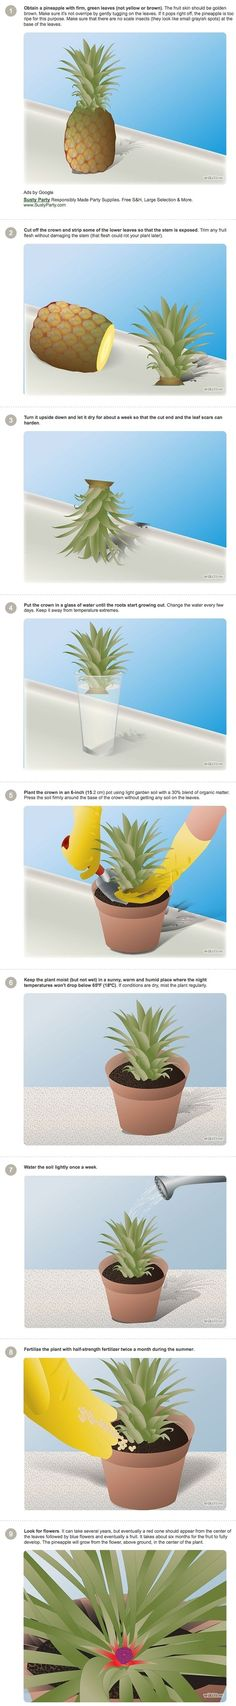 how to grow a pinapple by julie.m